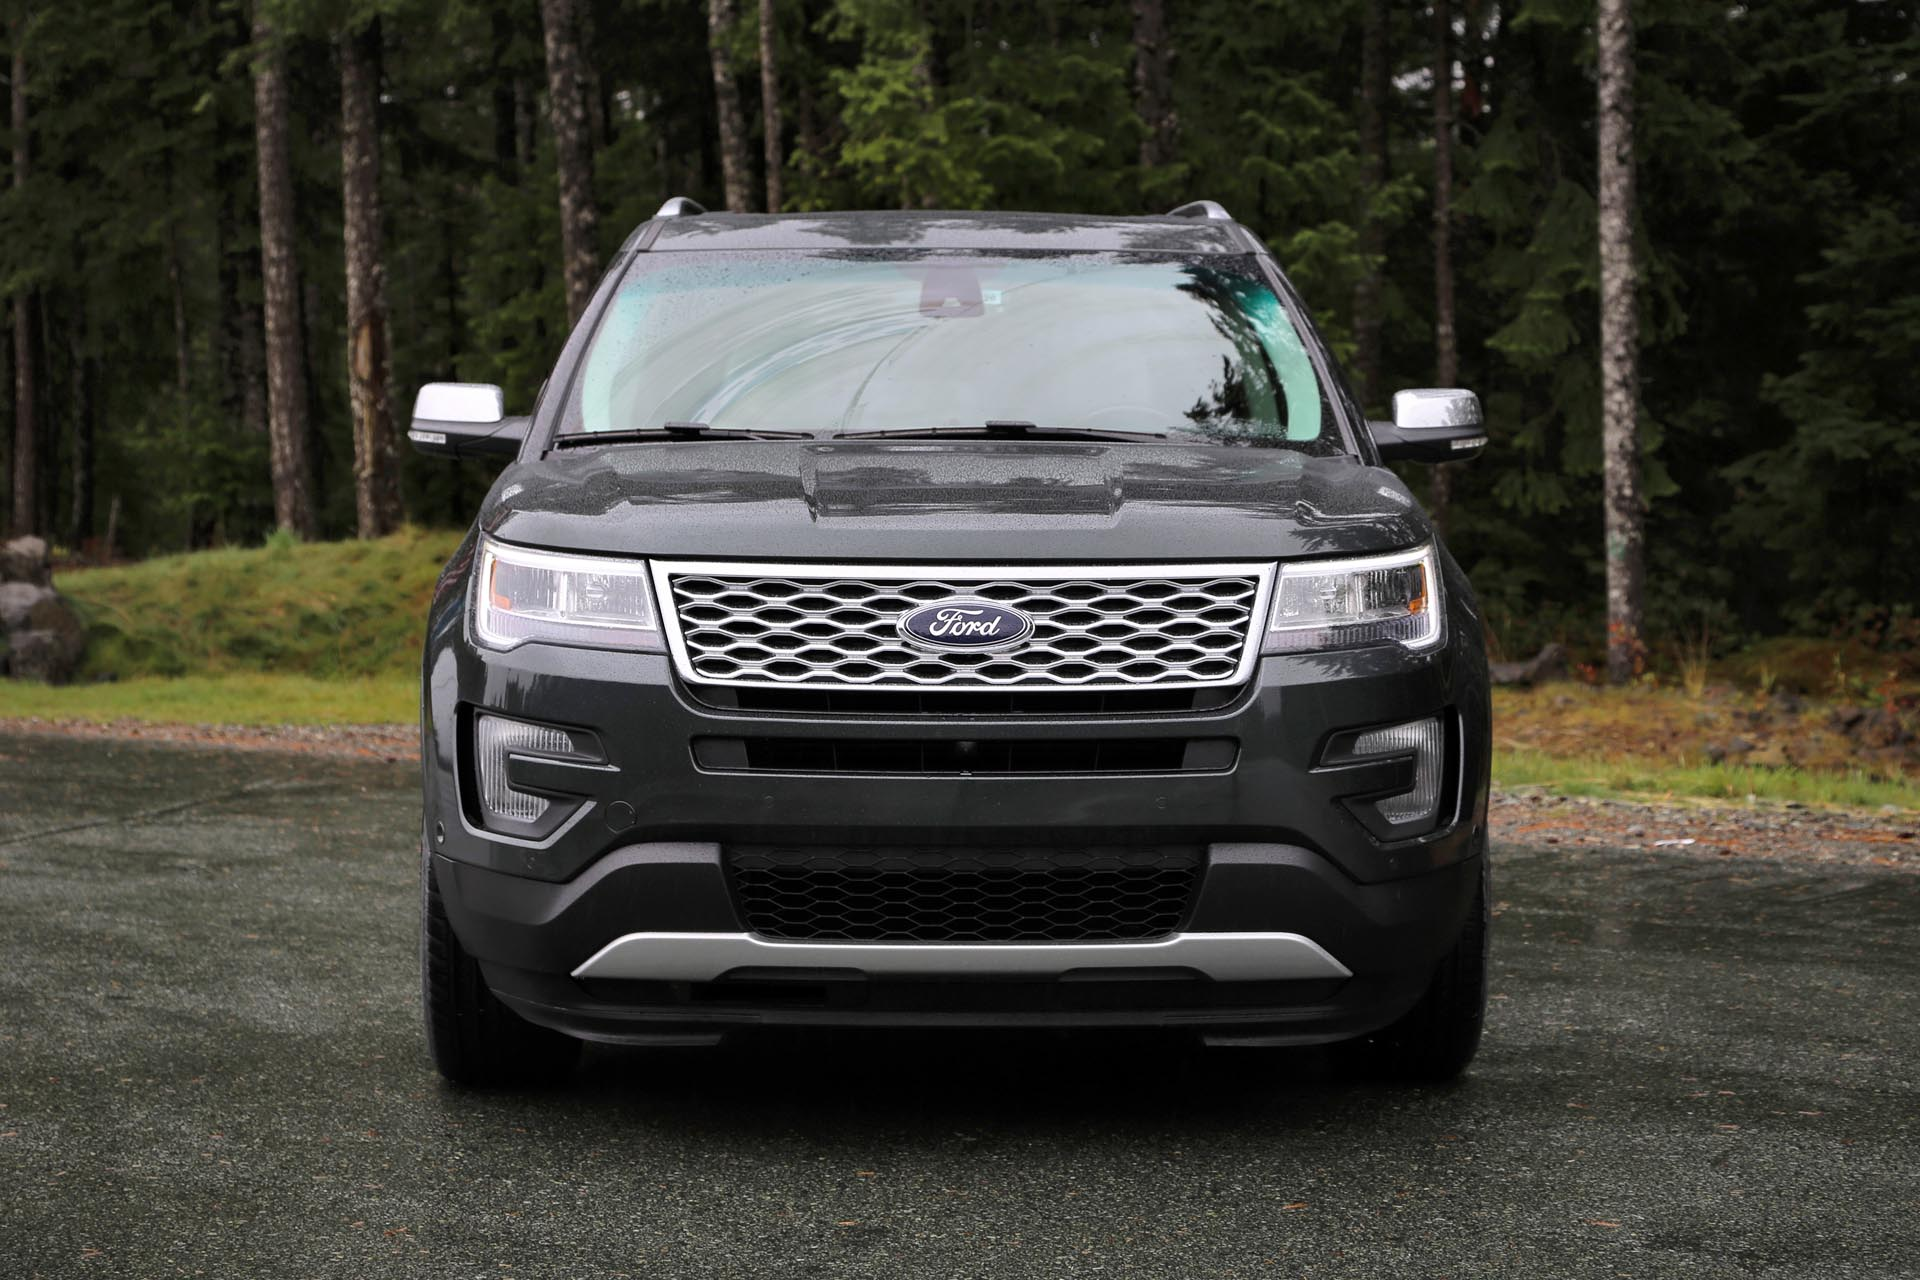 2016 ford explorer titanium. Black Bedroom Furniture Sets. Home Design Ideas